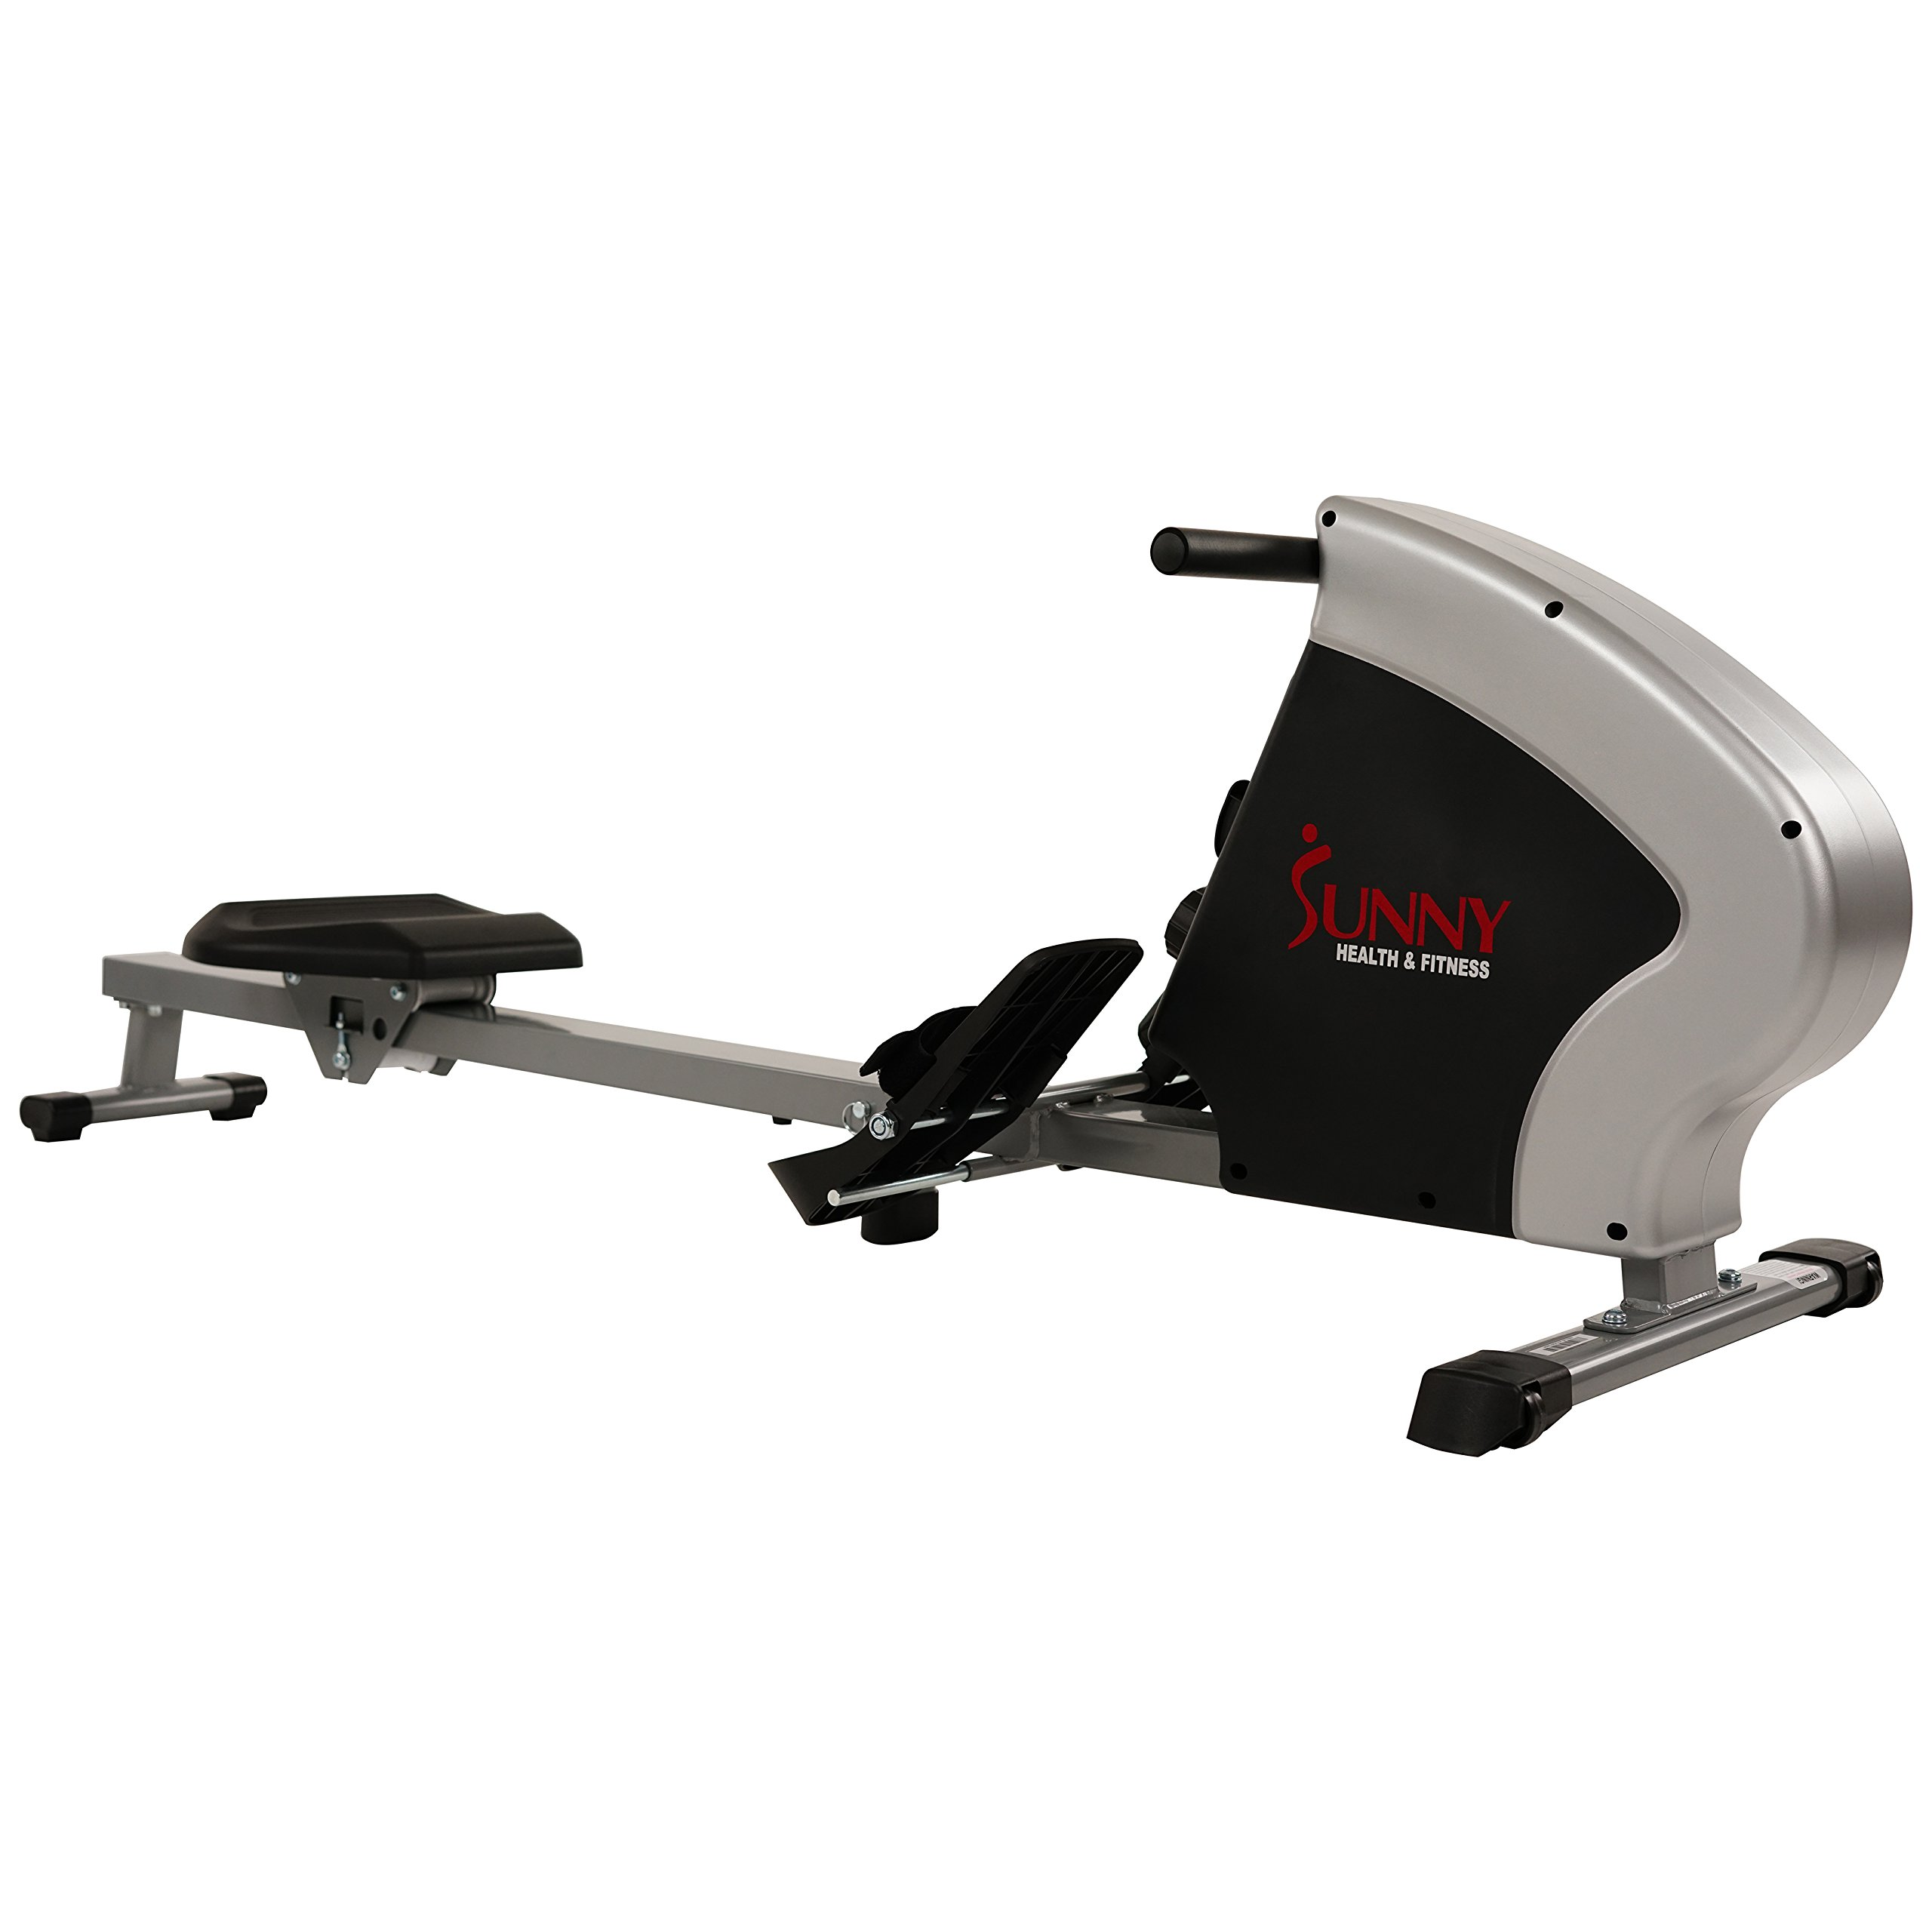 Sunny Health & Fitness Compact Folding Magnetic Rowing Machine Rower, LCD Monitor with Tablet Holder - Synergy Power Motion - SF-RW5801 by Sunny Health & Fitness (Image #11)